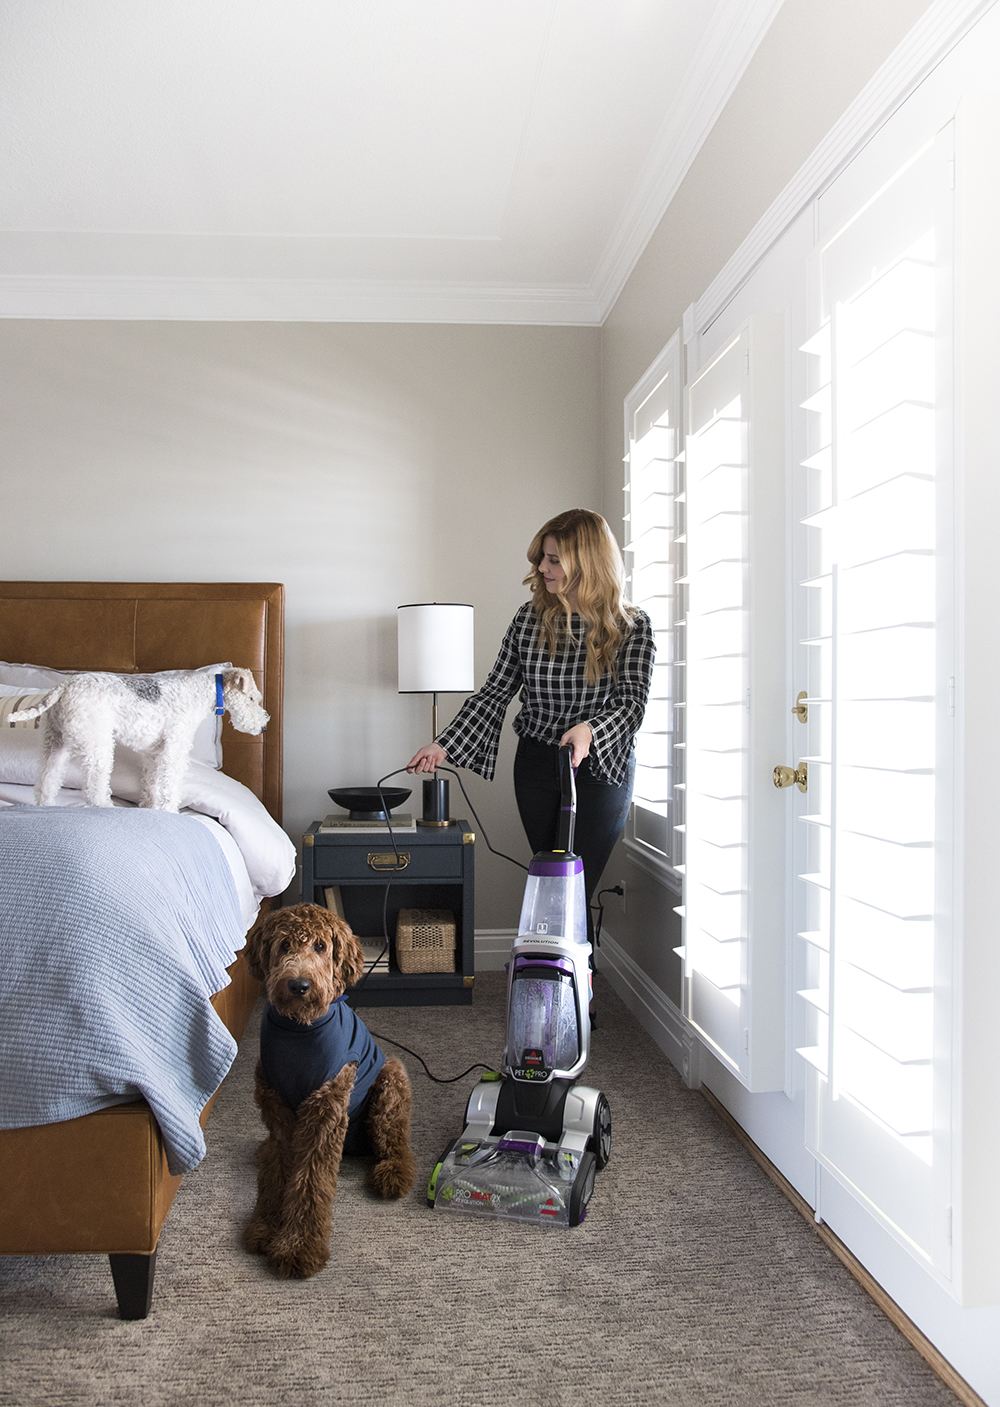 10 Tips for Helping Your Dog Through A Renovation or Remodel - roomfortuesday.com